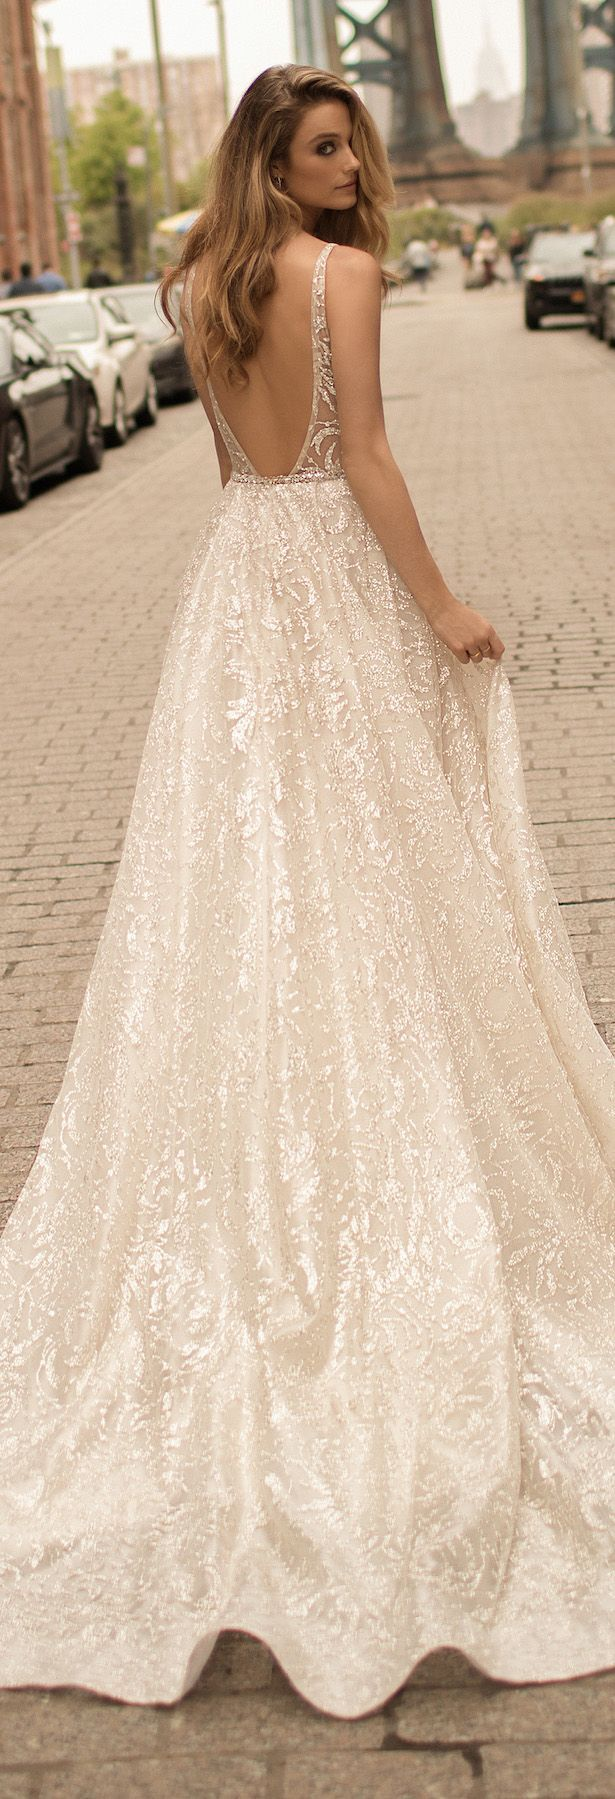 How much are berta wedding dresses  Berta Wedding Dress Collection Spring  weddingdress  Lovely